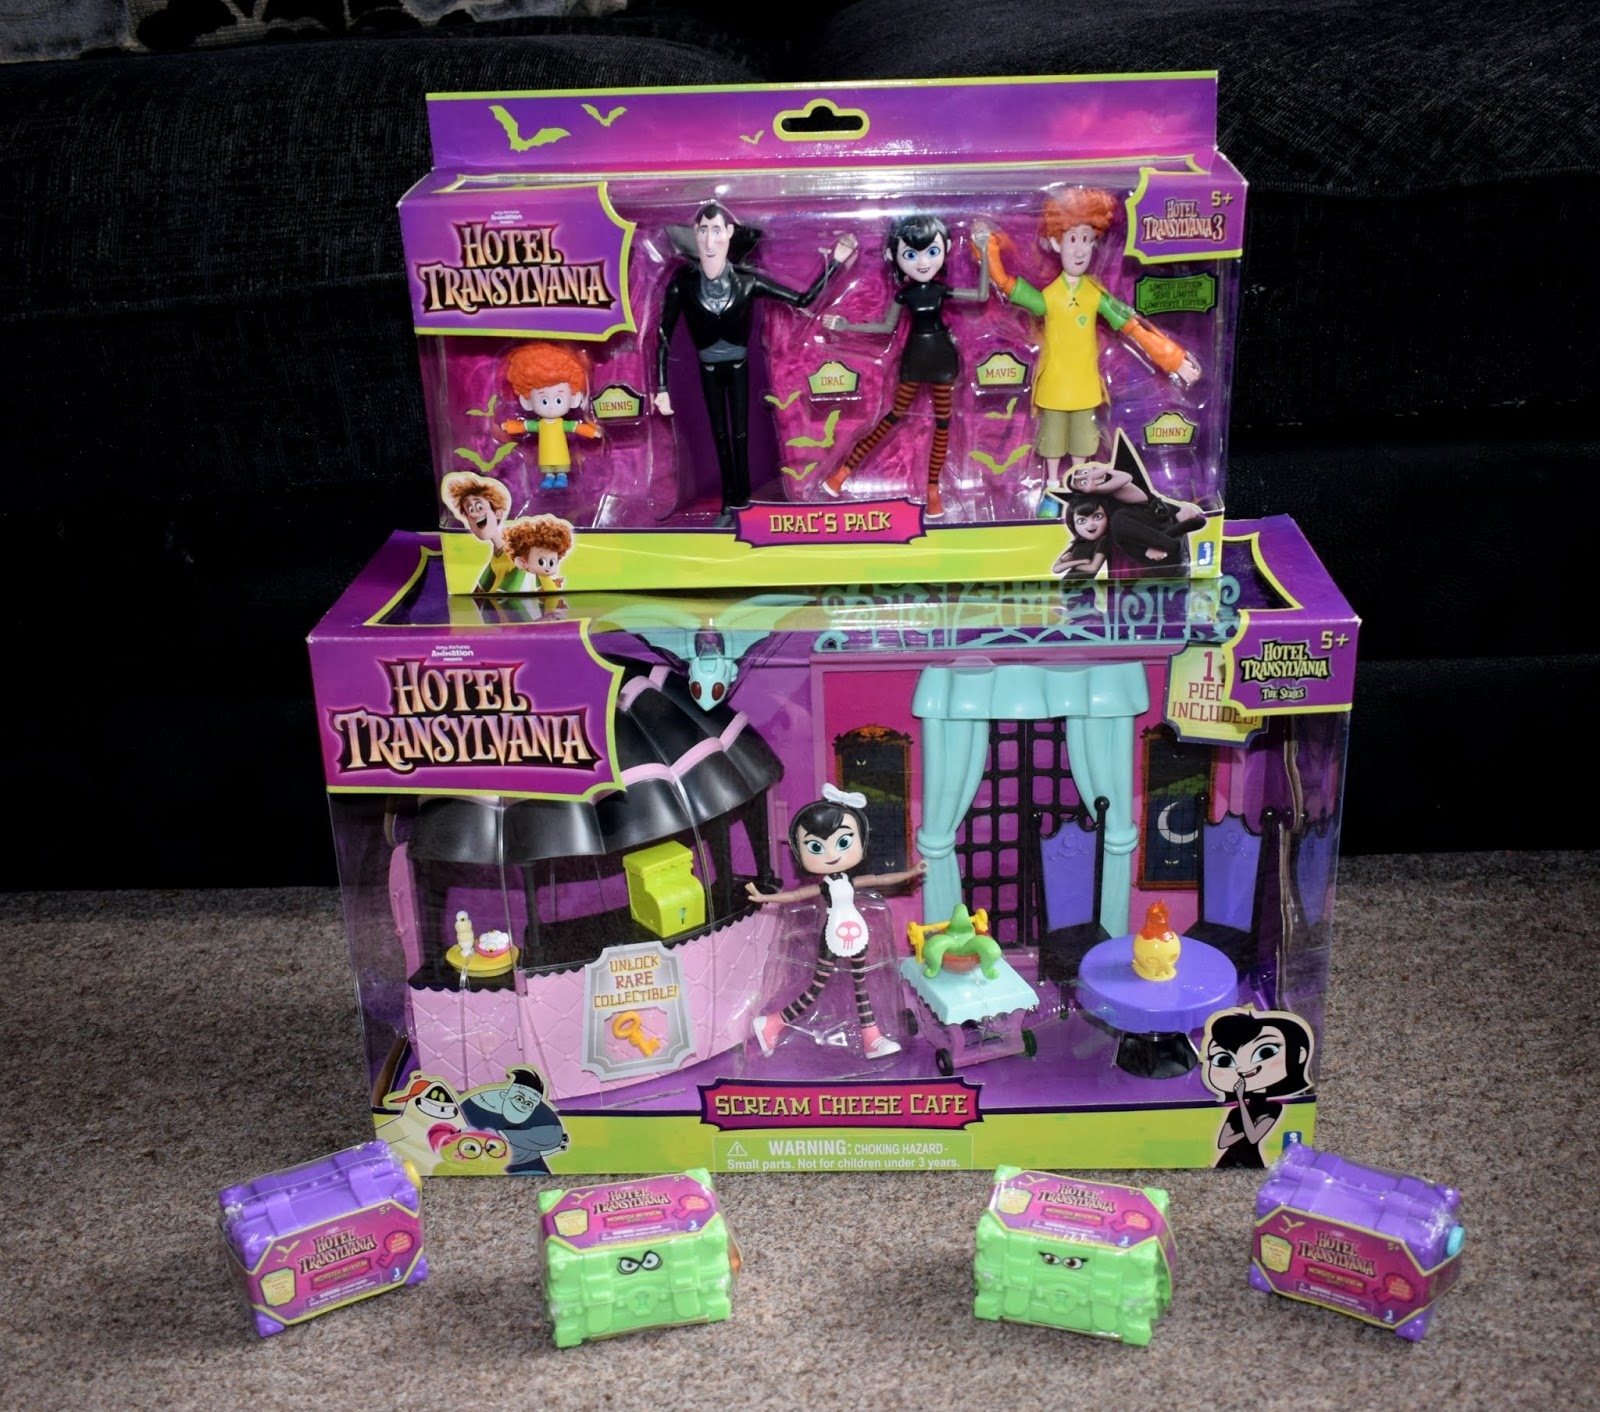 The Fantastic New Toy Line Inspired By Movies Has Lots Of Products In Which Include Figures Playsets And Even Some Mystery Collectables Much To